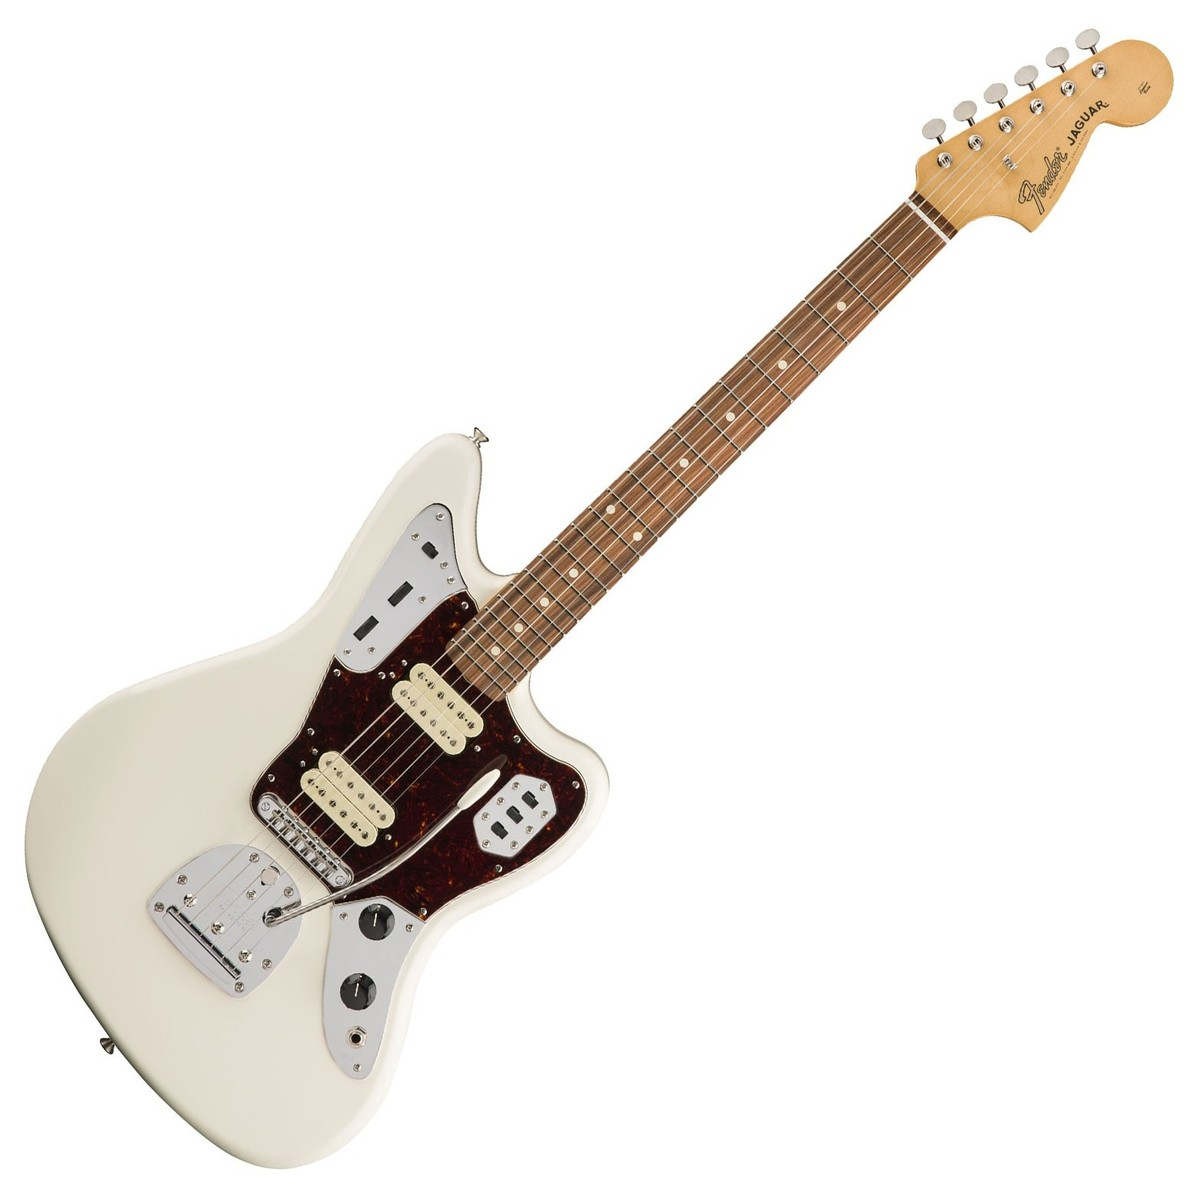 fender classic player jaguar special hh pau ferro olympic white at gear4music. Black Bedroom Furniture Sets. Home Design Ideas